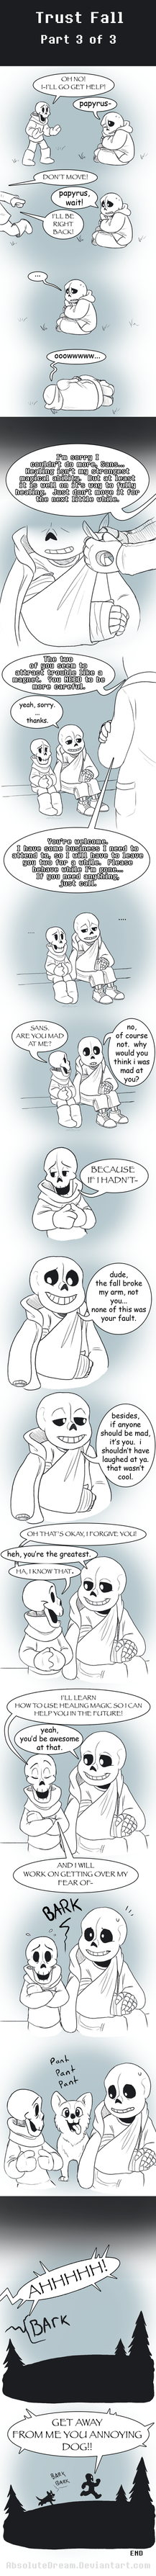 UT Comic:  Trust Fall - Part 3 of 3 by AbsoluteDream